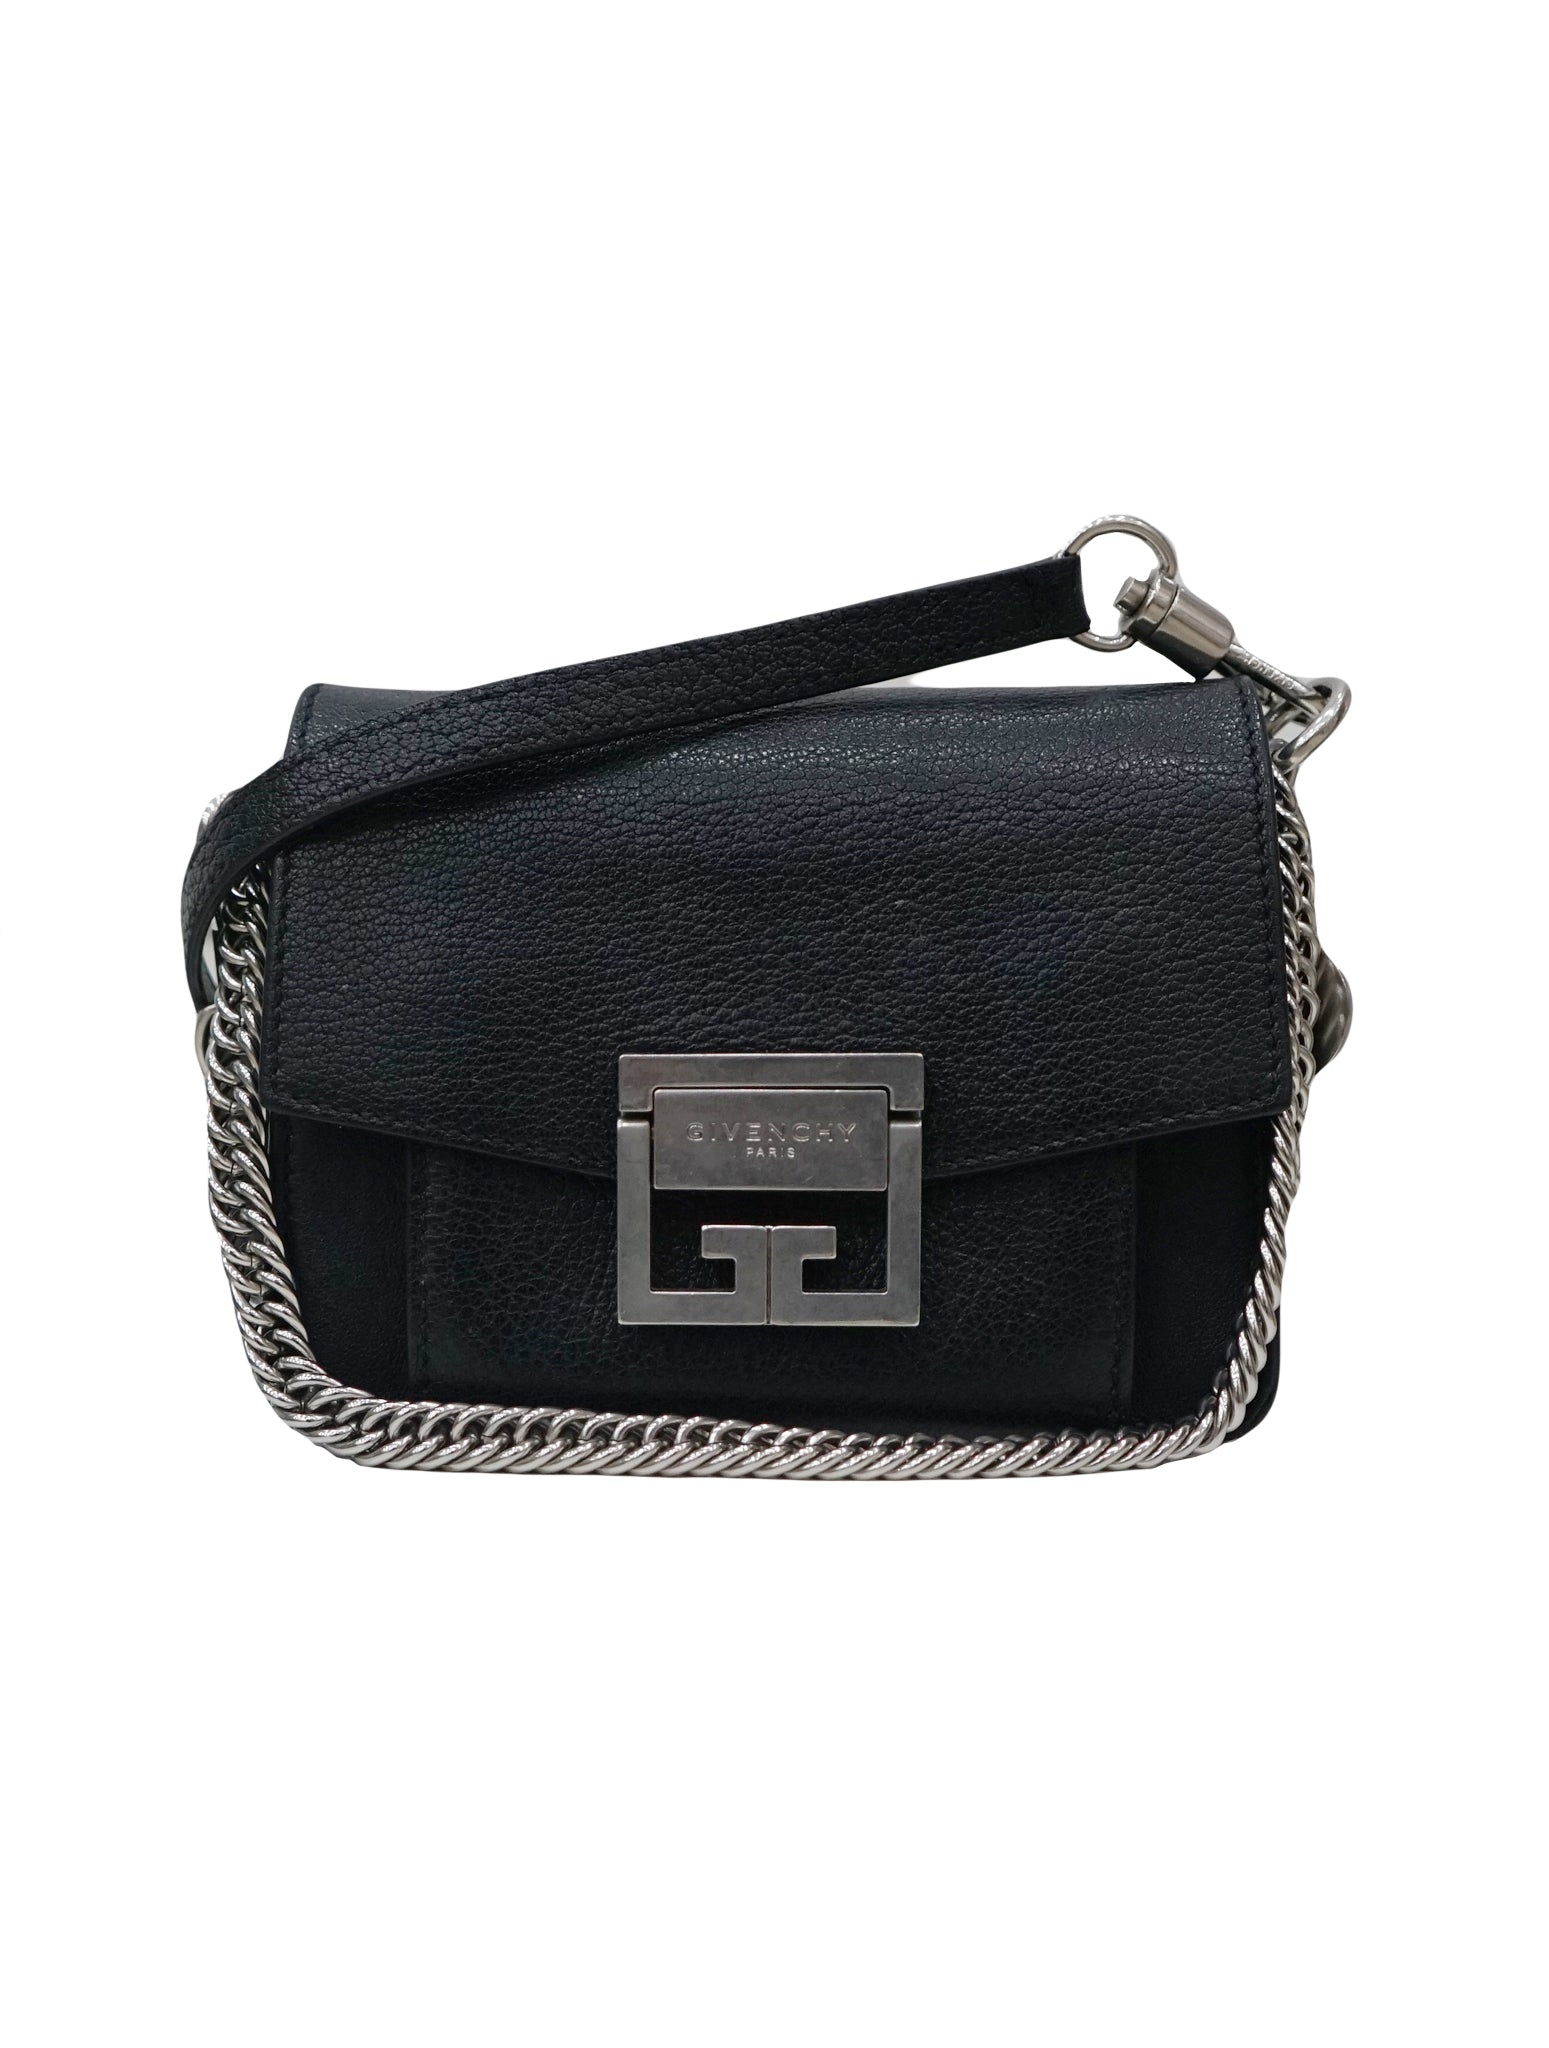 GV3 SOFT GRAINED LEATHER CROSSBODY BAG